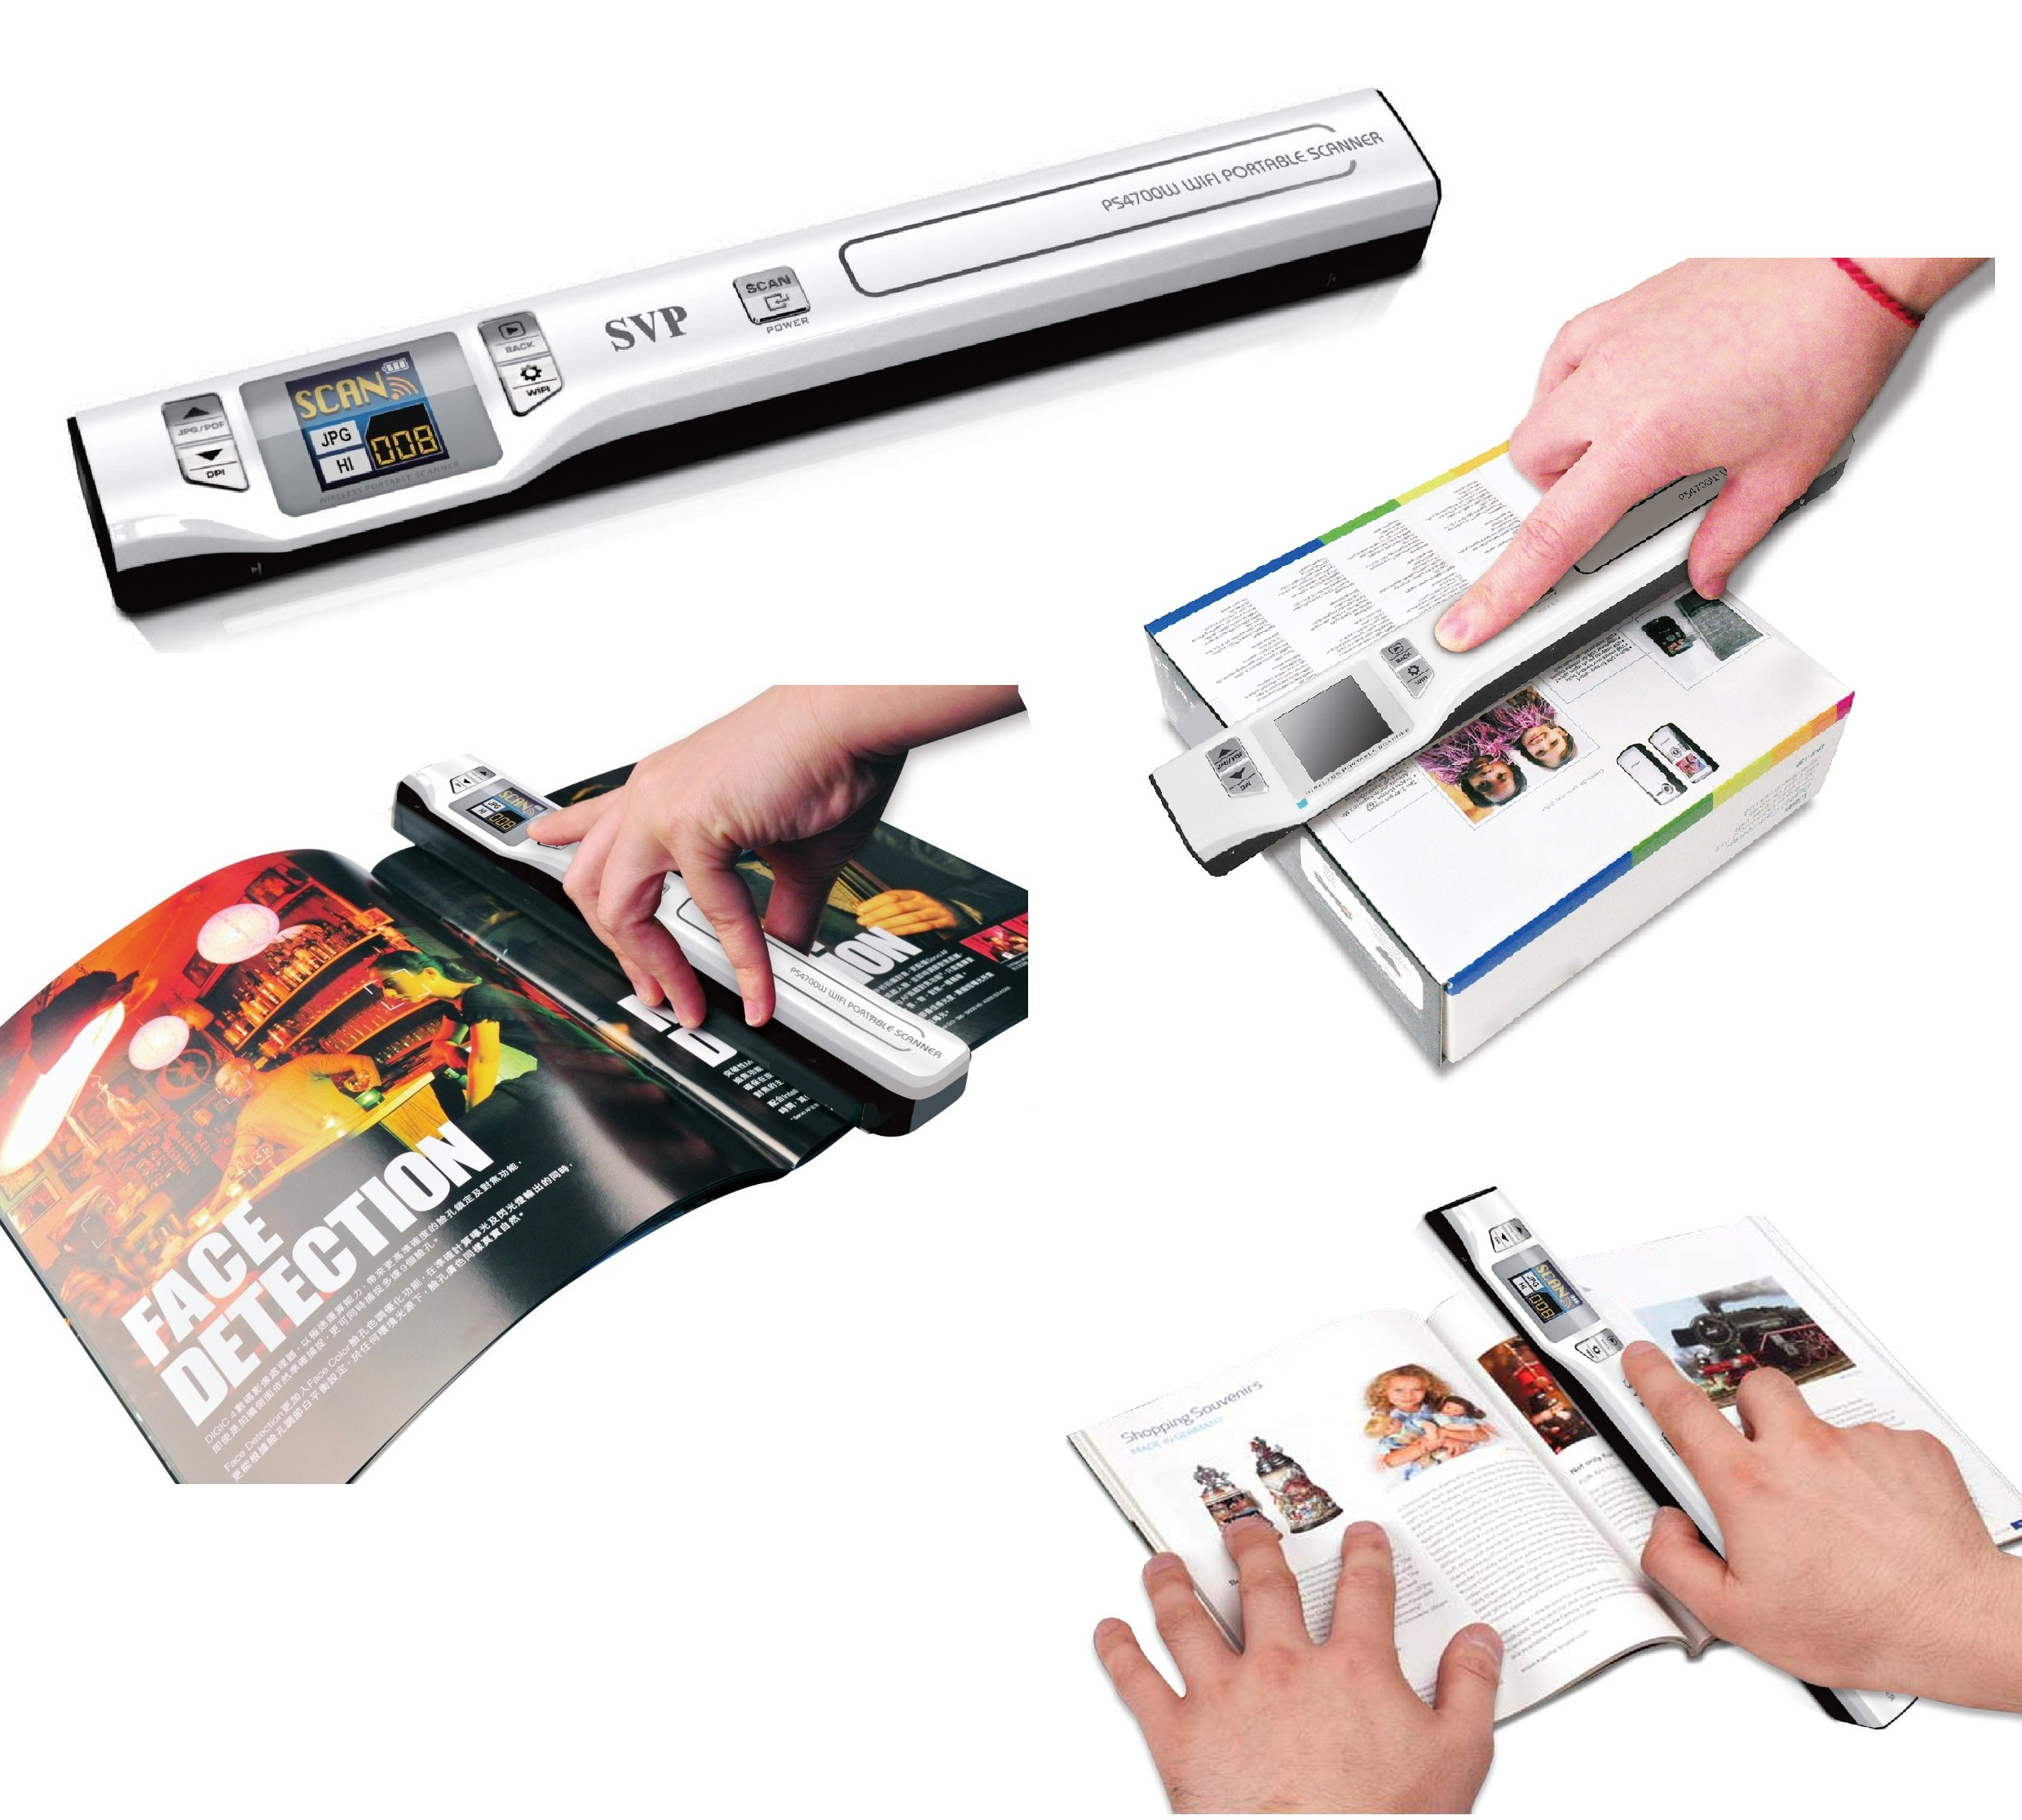 A PORTABLE SCANNER LET YOU EASILY SCAN YOUR DOCUMENTS PHOTOTS MAGAZINE AND NEWSPAPER ARTICLE LETTERS FABRIC PATTERNS INTO DIGITAL PICTURES SAVED ON